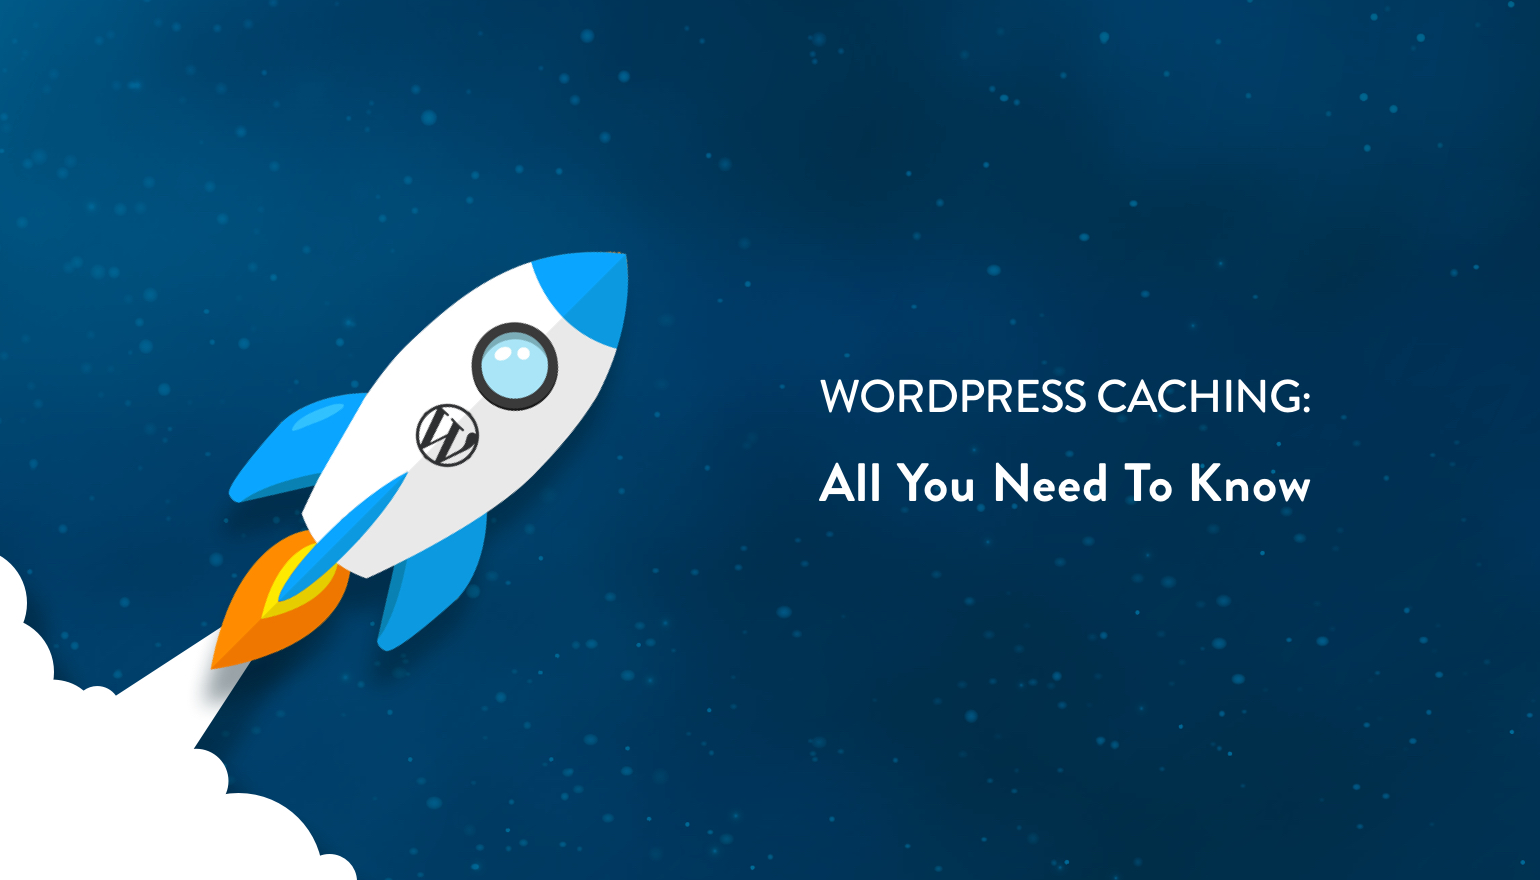 WordPress Caching - All you need to know